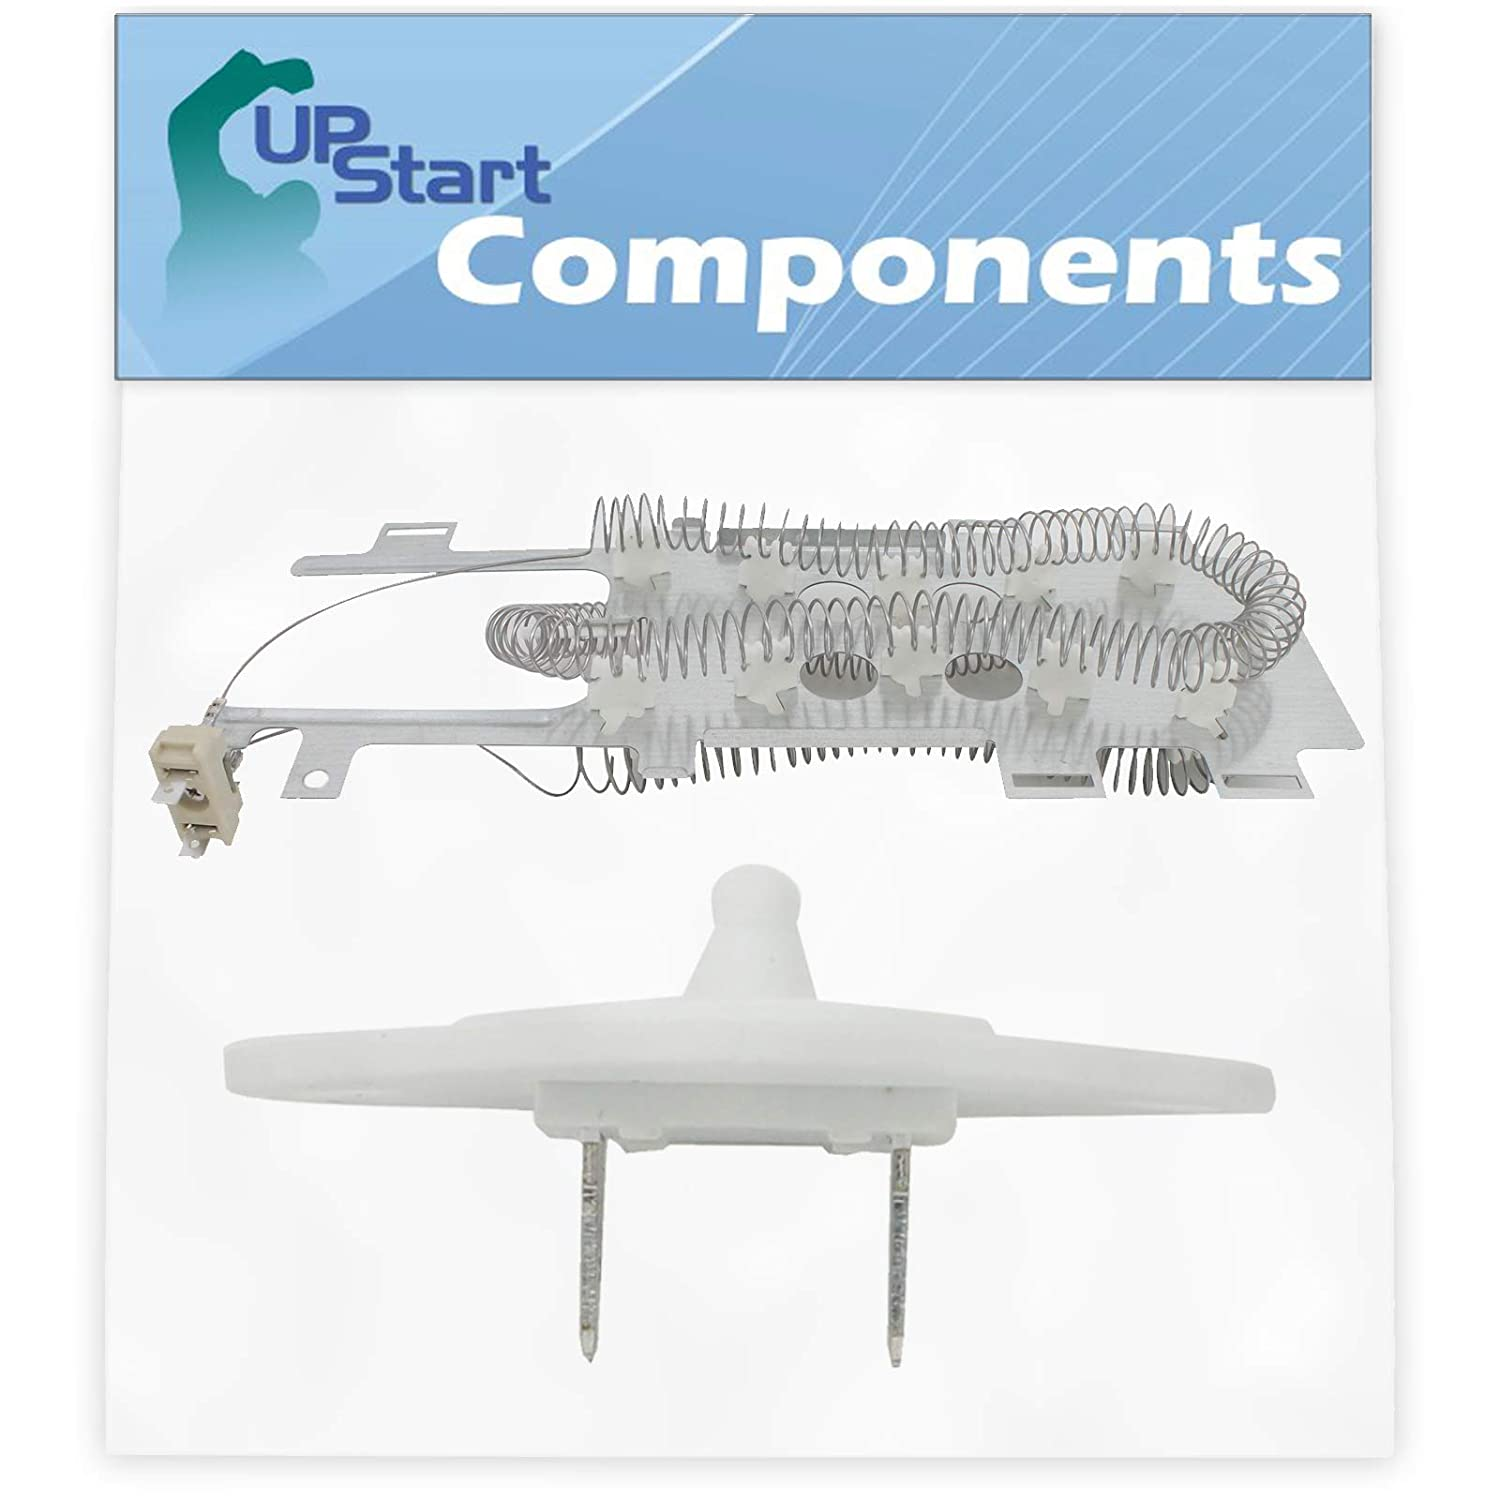 8544771 Dryer Heating Element & 8577274 Thermistor Kit Replacement for Whirlpool WED9550WW2 Dryer - Compatible with WP8544771 & WP8577274 Heater Element & Thermistor Kit - UpStart Components Brand